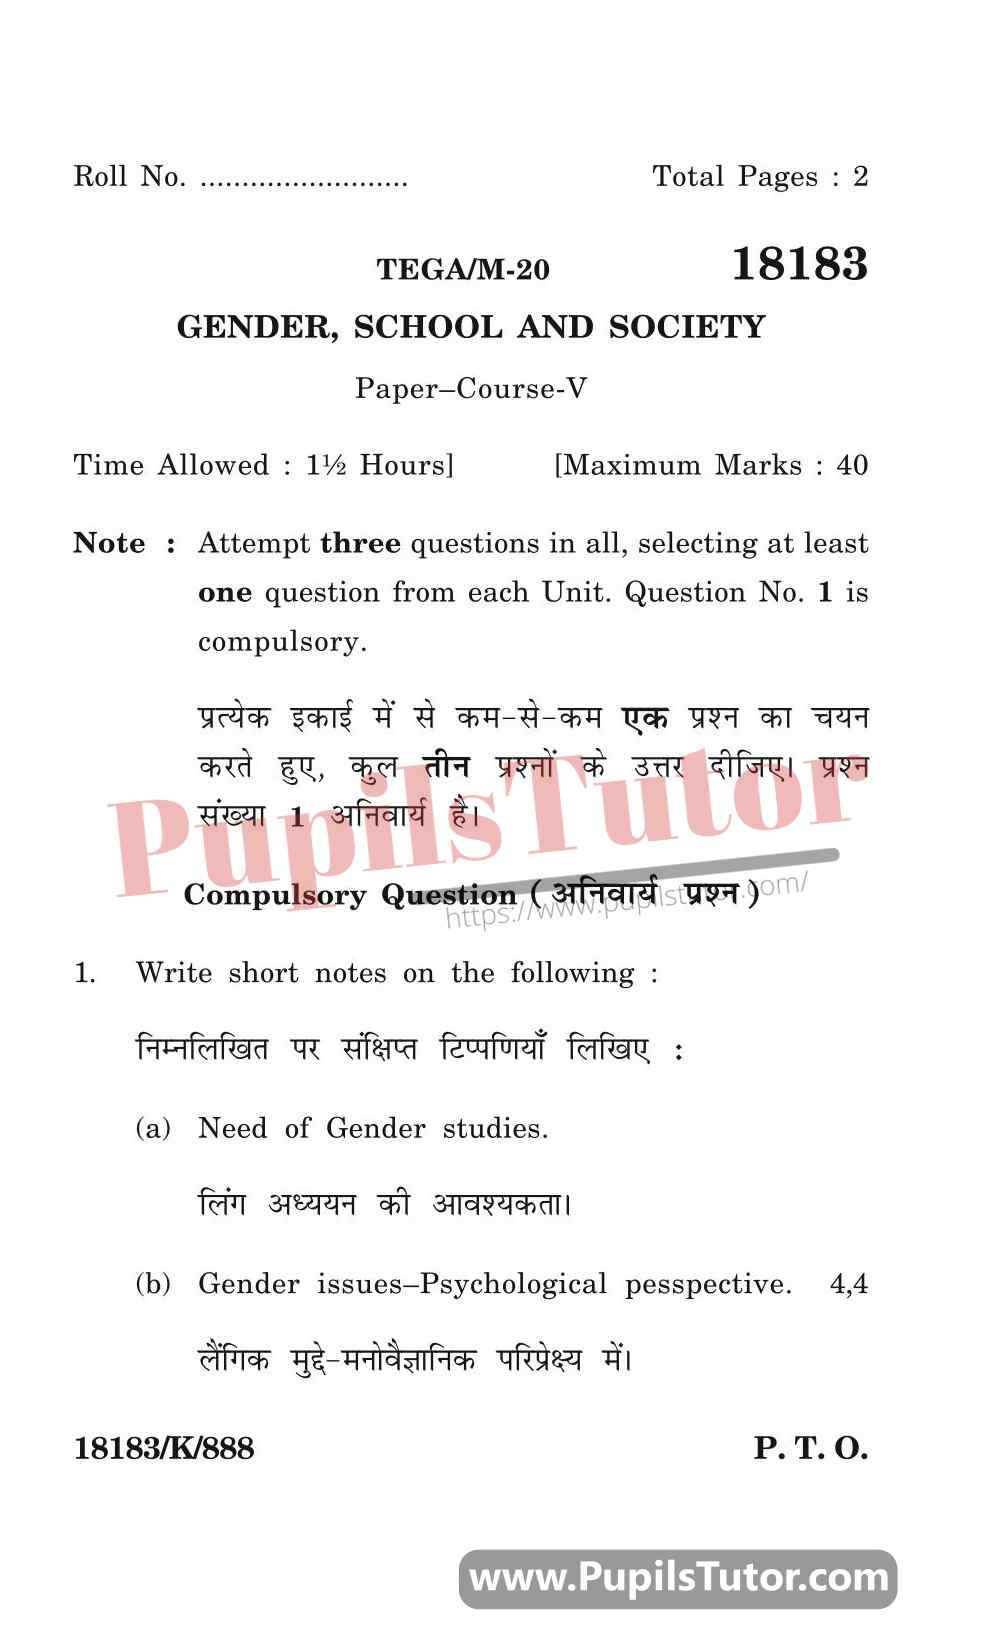 KUK (Kurukshetra University, Haryana) Gender, School And Society Question Paper 2020 For B.Ed 1st And 2nd Year And All The 4 Semesters In English And Hindi Medium Free Download PDF - Page 1 - Pupils Tutor